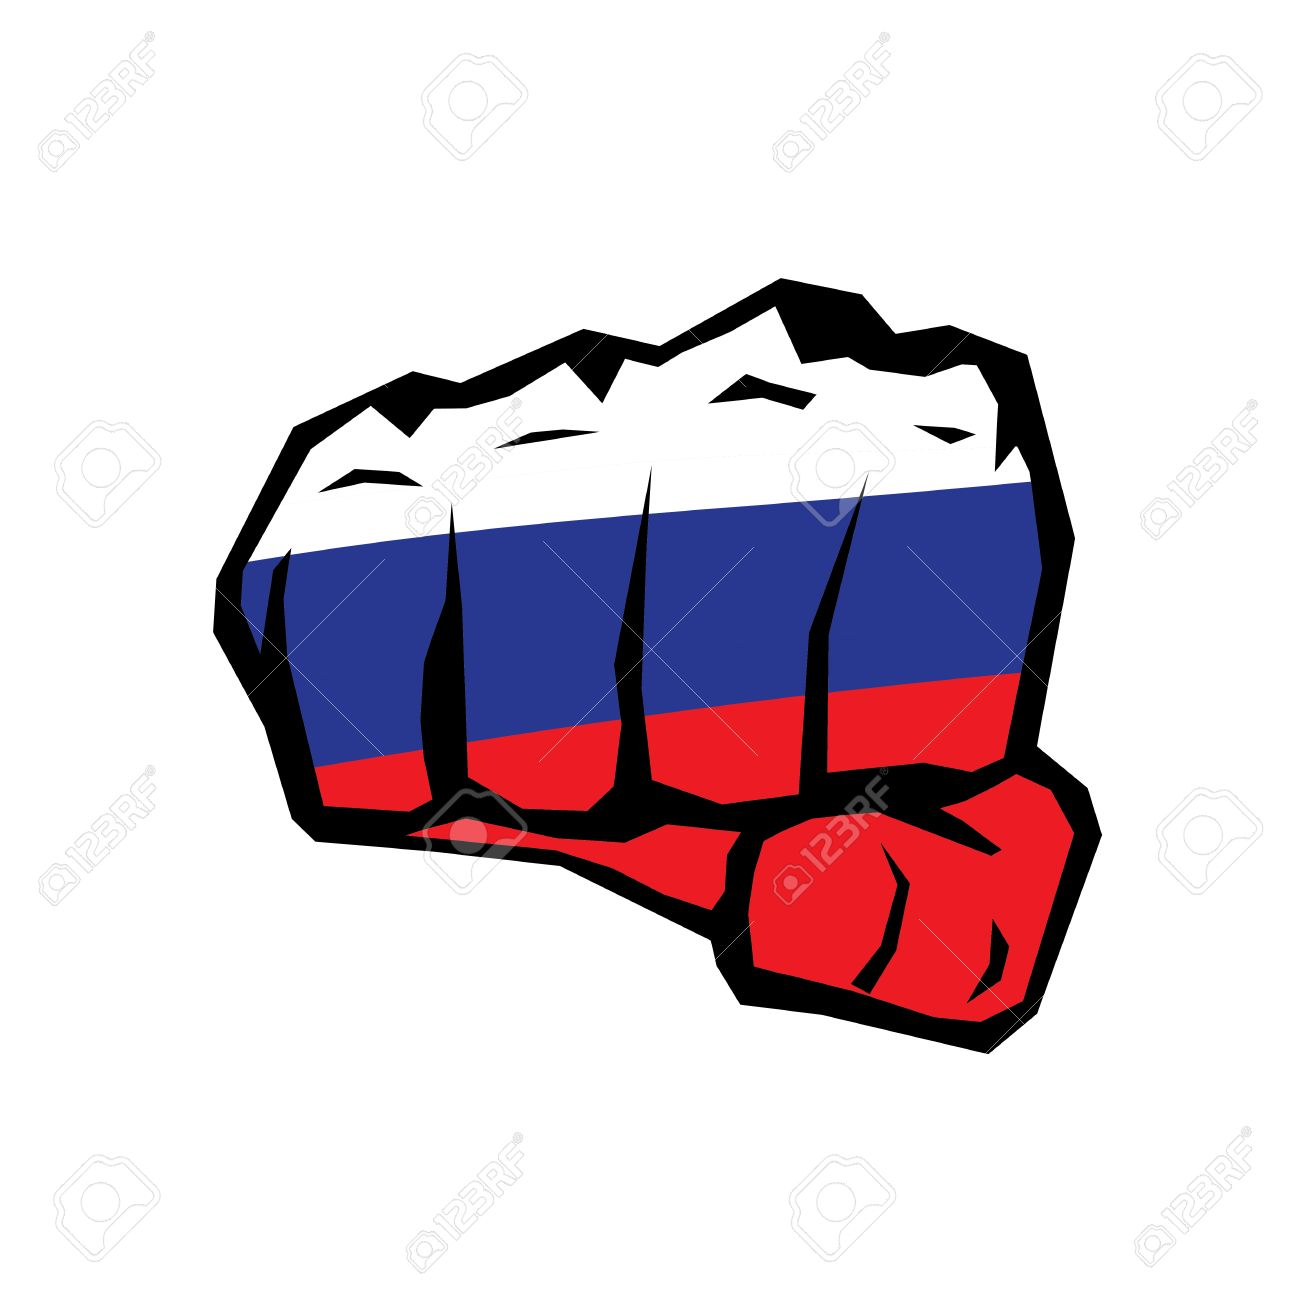 Vector Fist Icon. Fist Colored In Russian Flag Royalty Free.